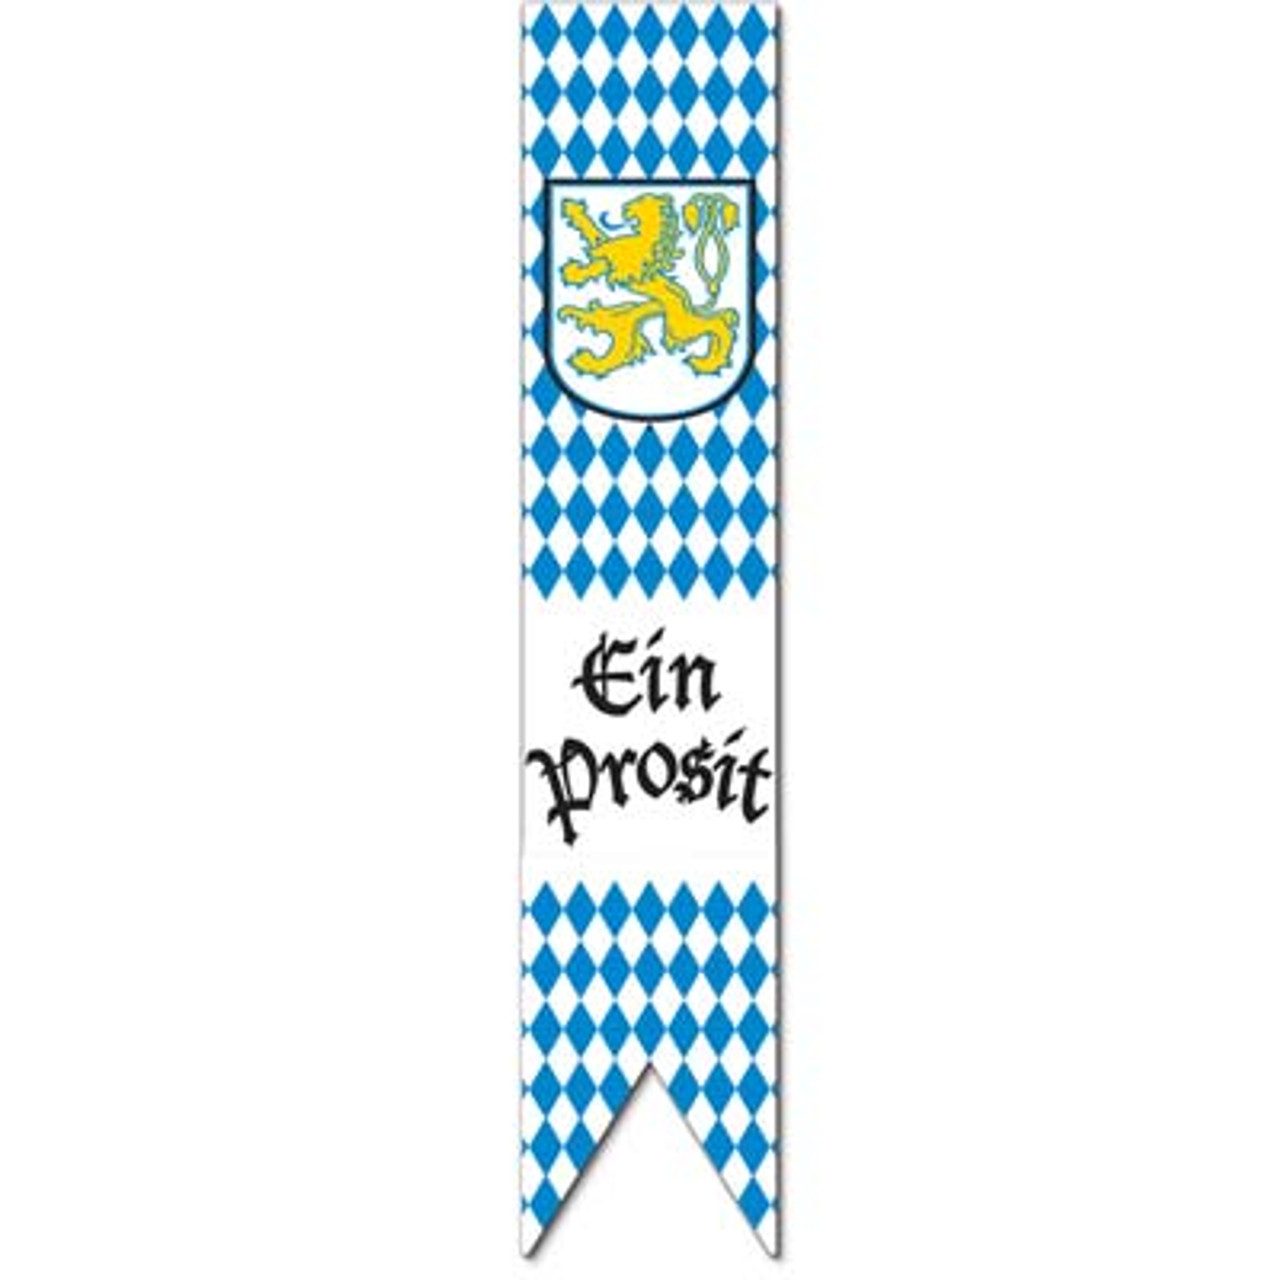 Oktoberfest Jointed Pull down Party Banner Decoration